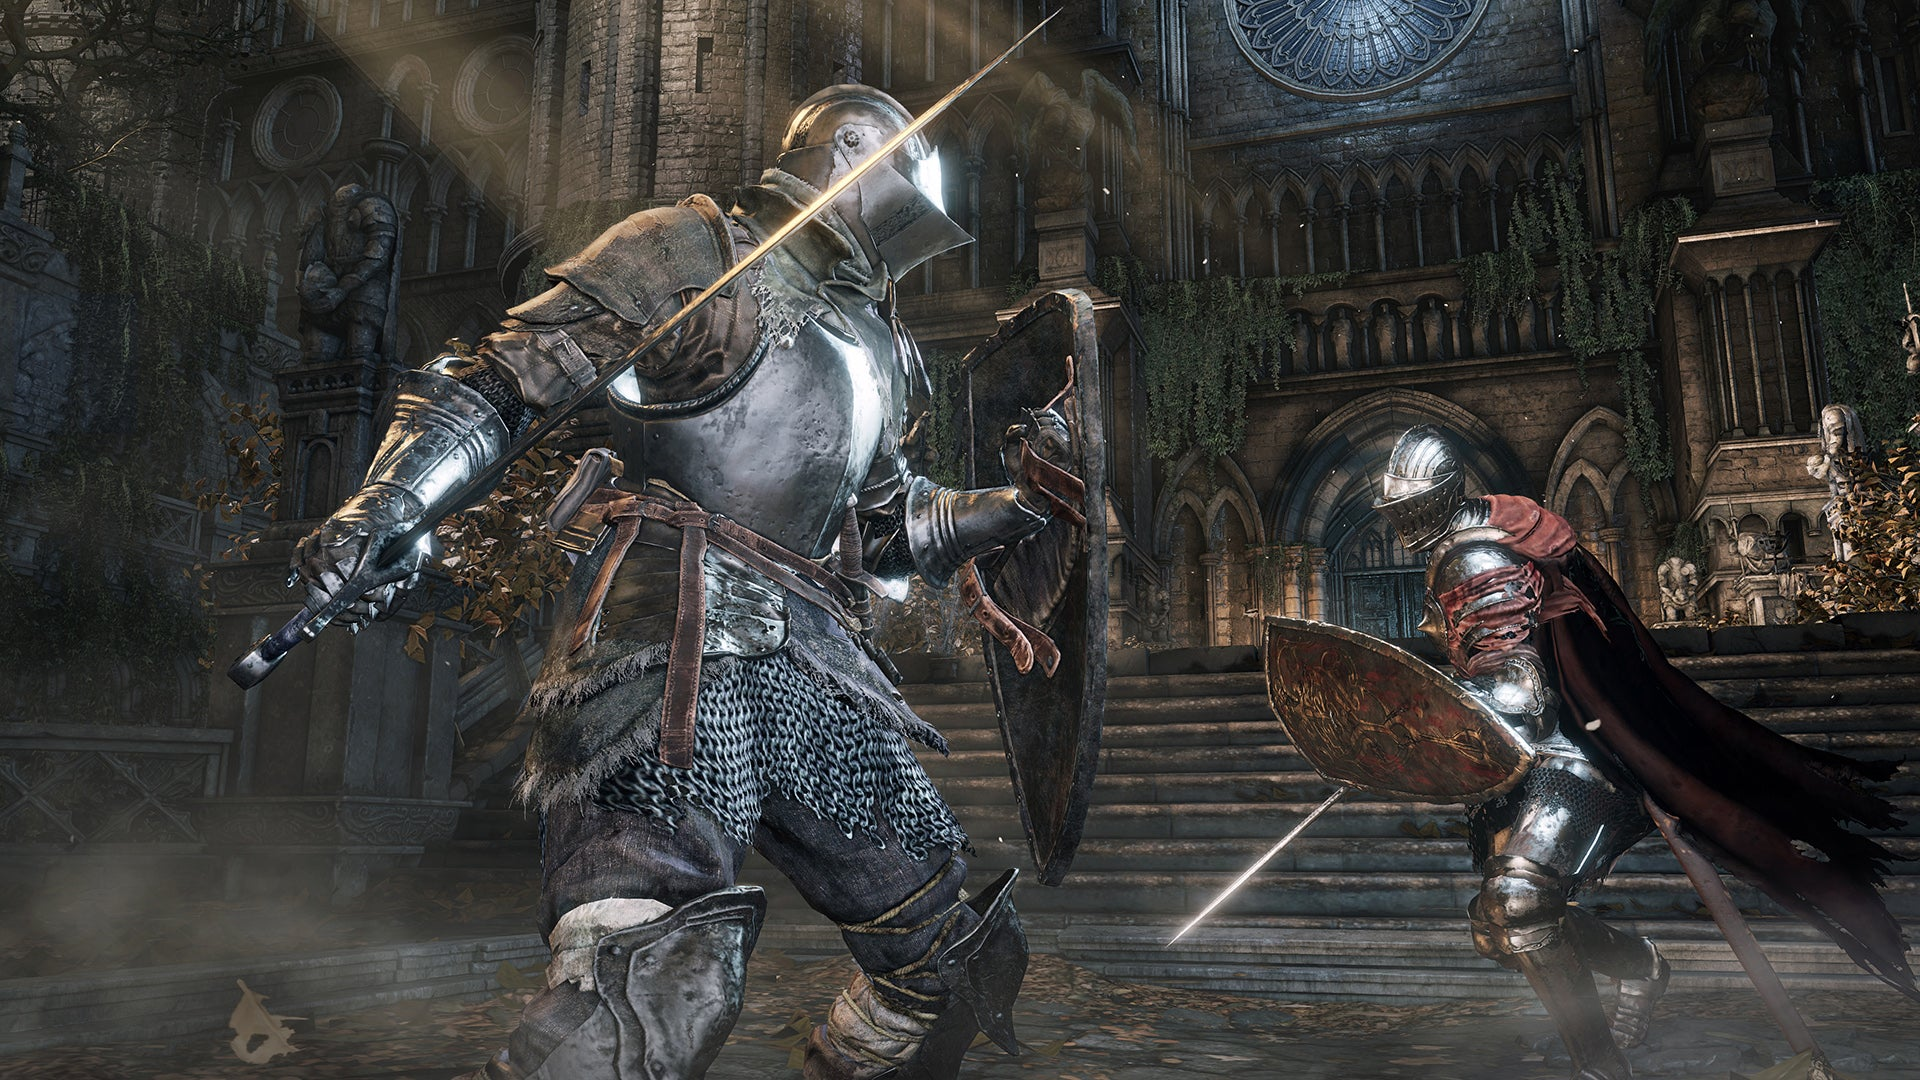 Dark Souls 3 PC Has Crashing Issues, But There's A Temporary Fix